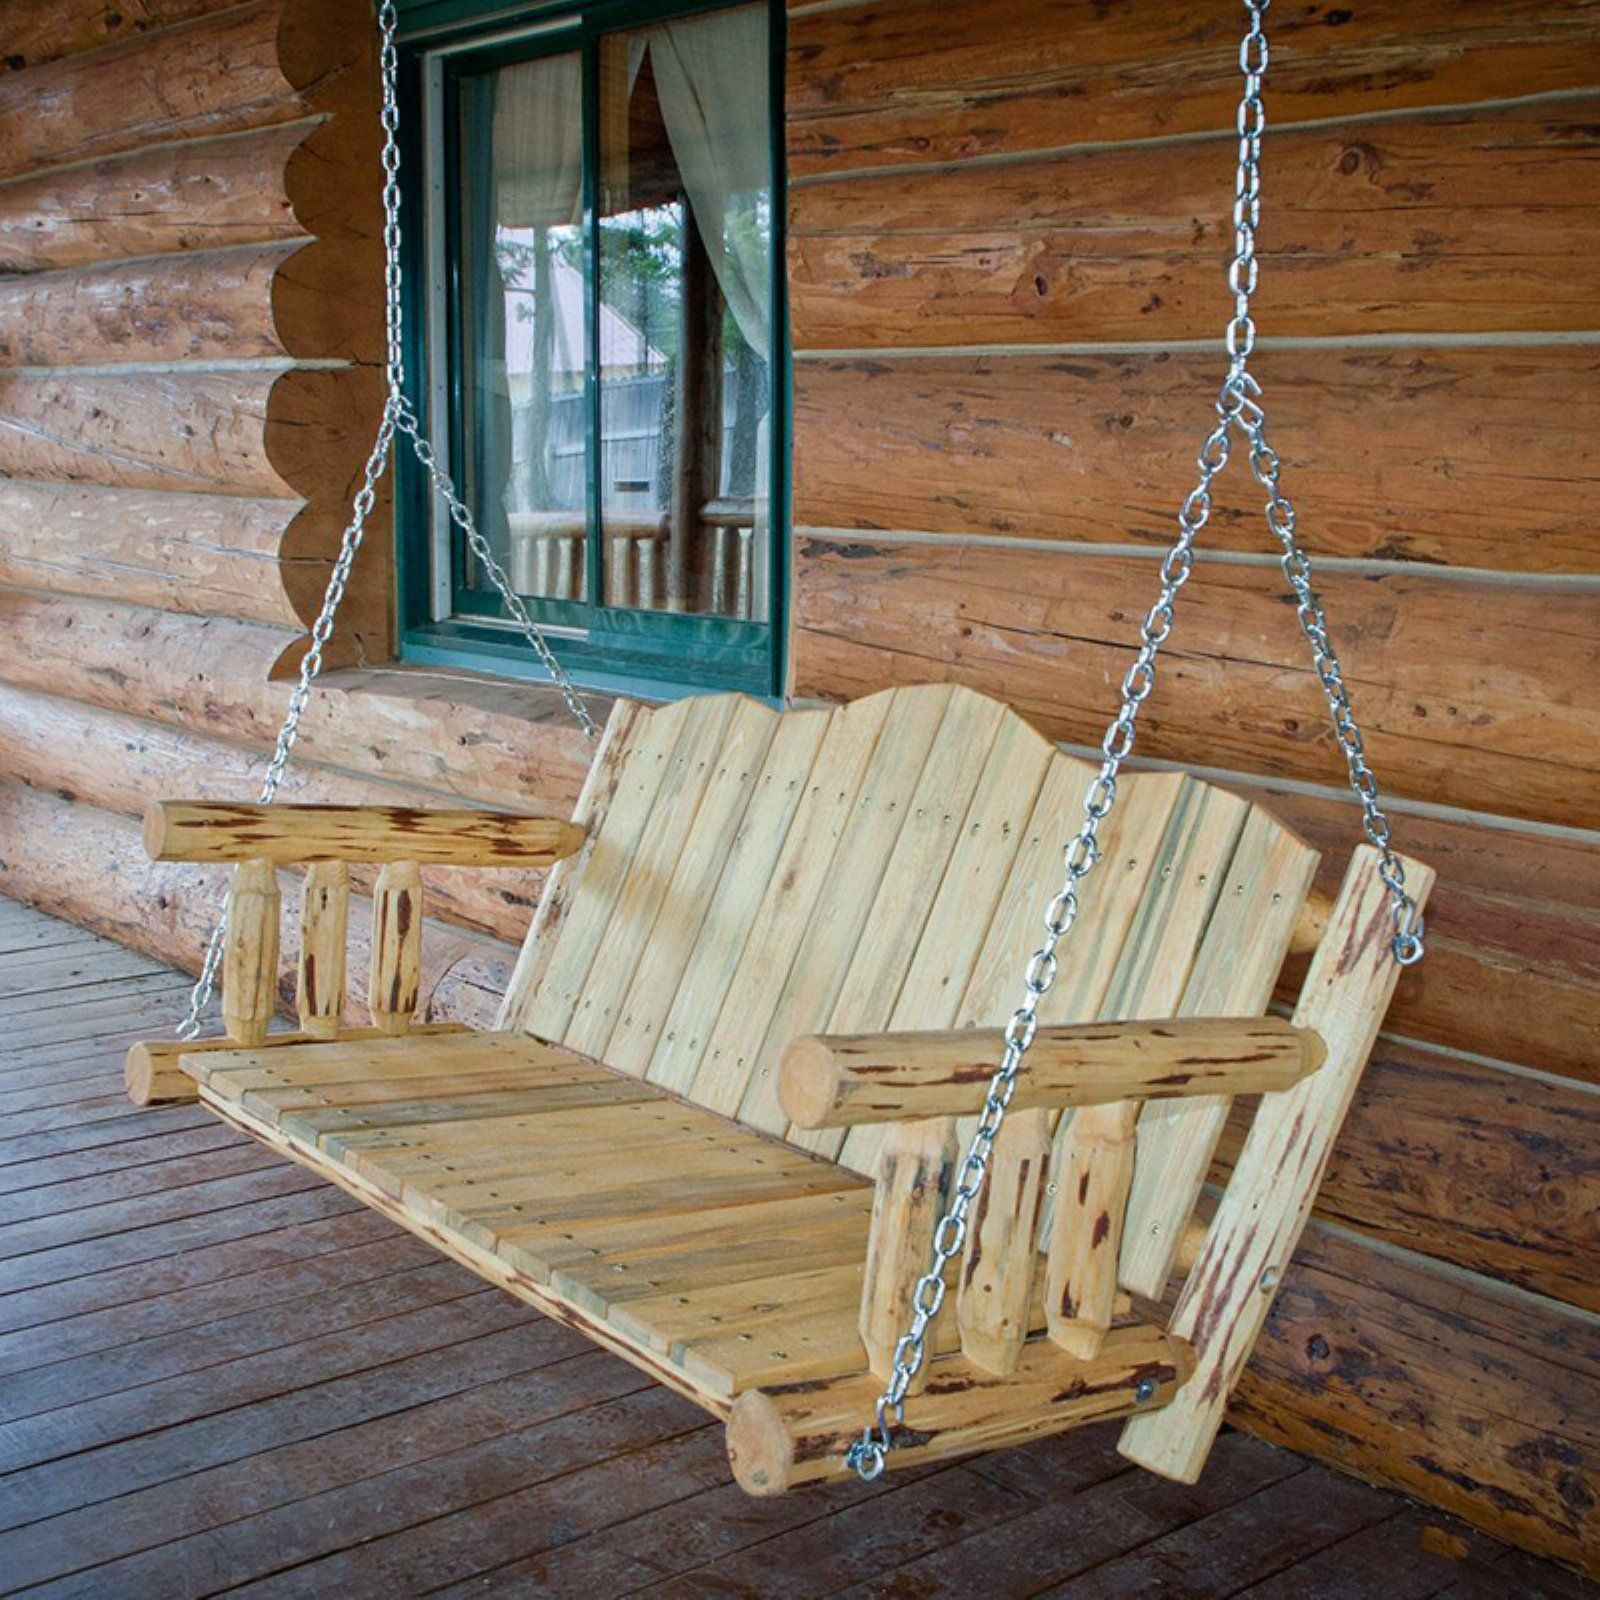 Montana Woodworks 4 Ft. Porch Swing With Chains